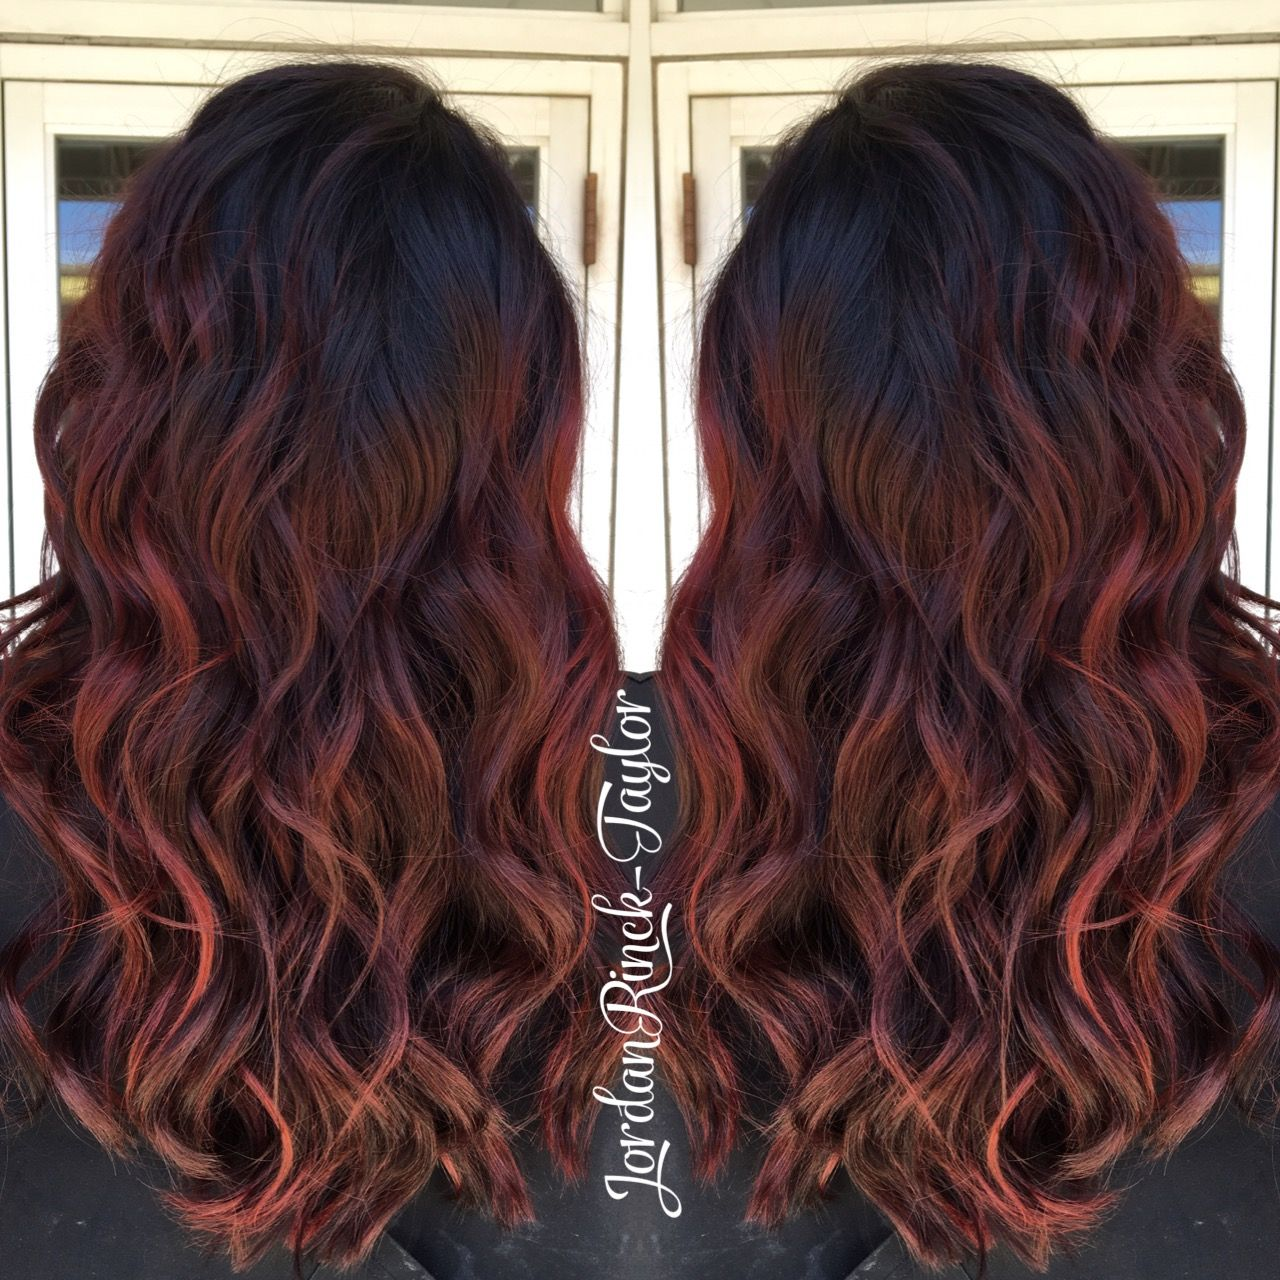 Deep Red Hair With Dark Shadow Roots Instagram Jordanrincktaylor Red Hair Dark Roots Shadow Roots Hair Roots Hair